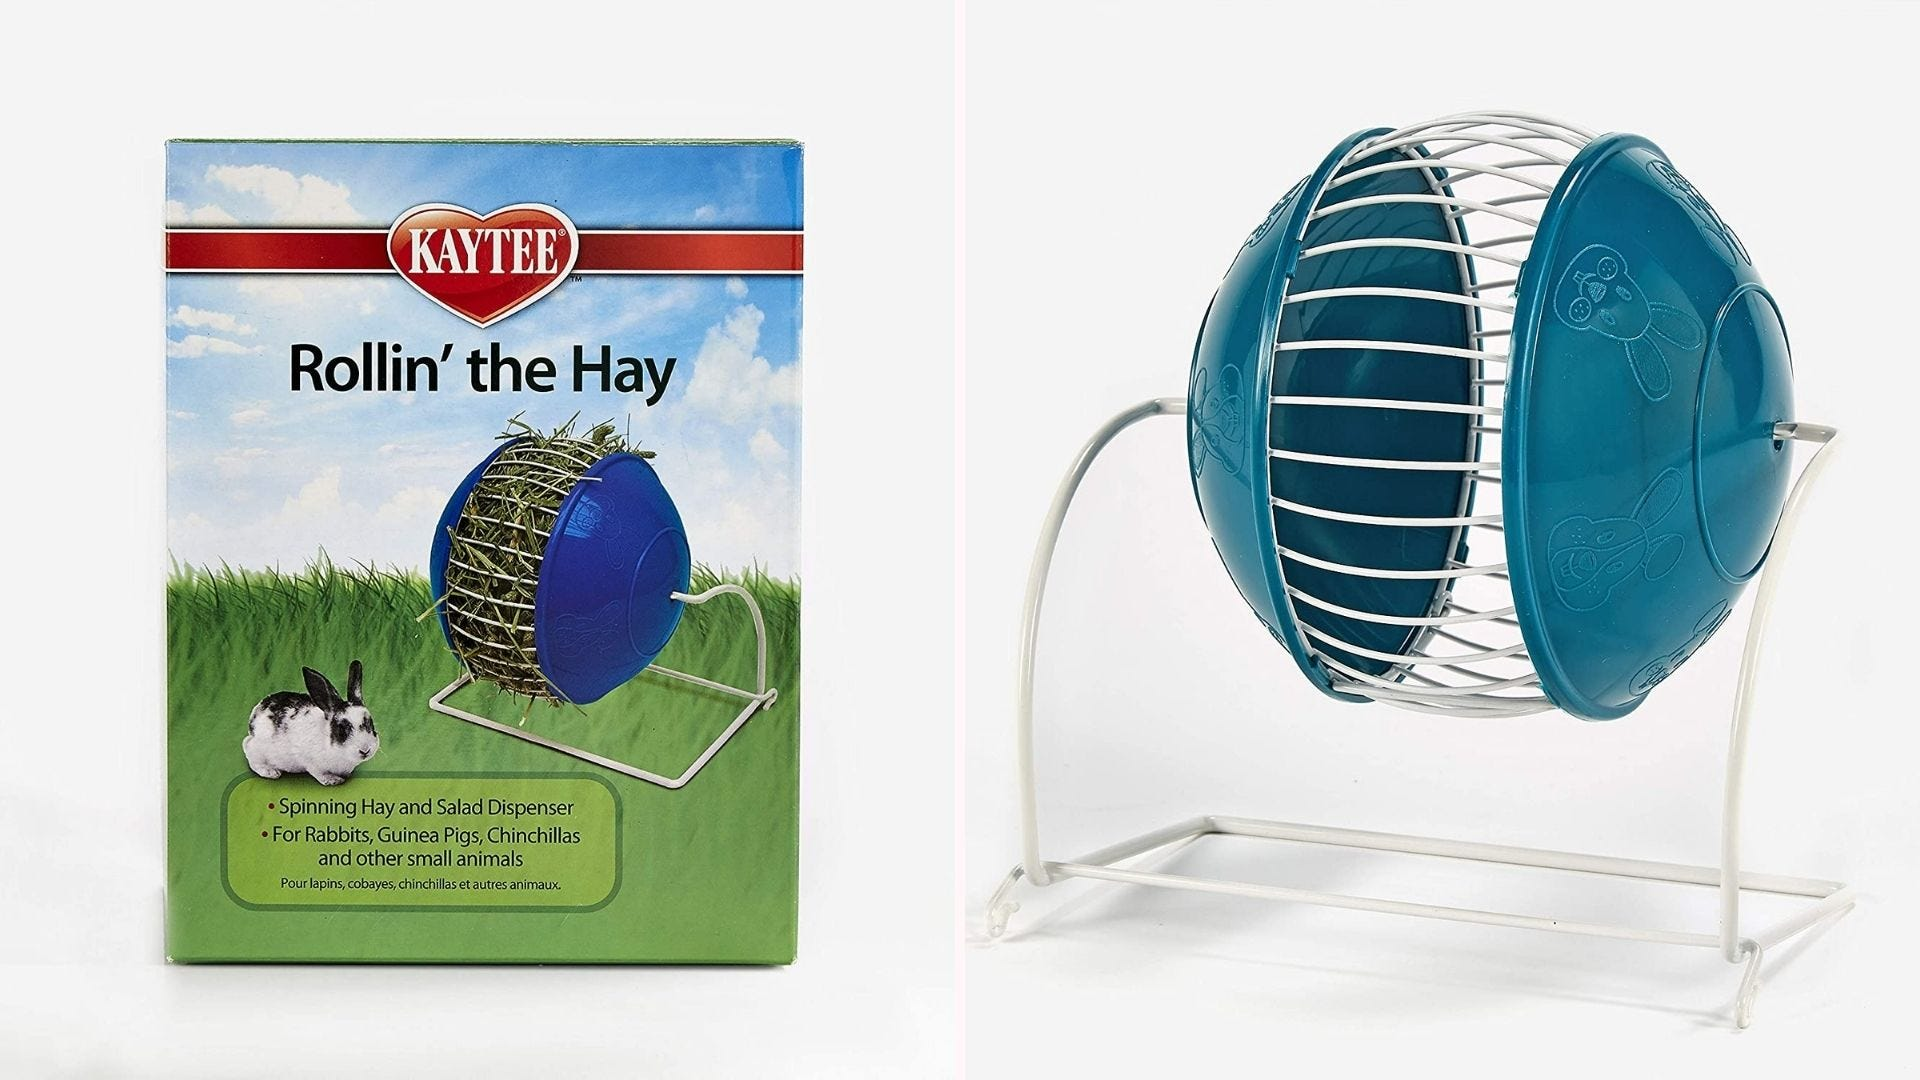 Kaytee rolling hay feeder for rabbits and other small animals.